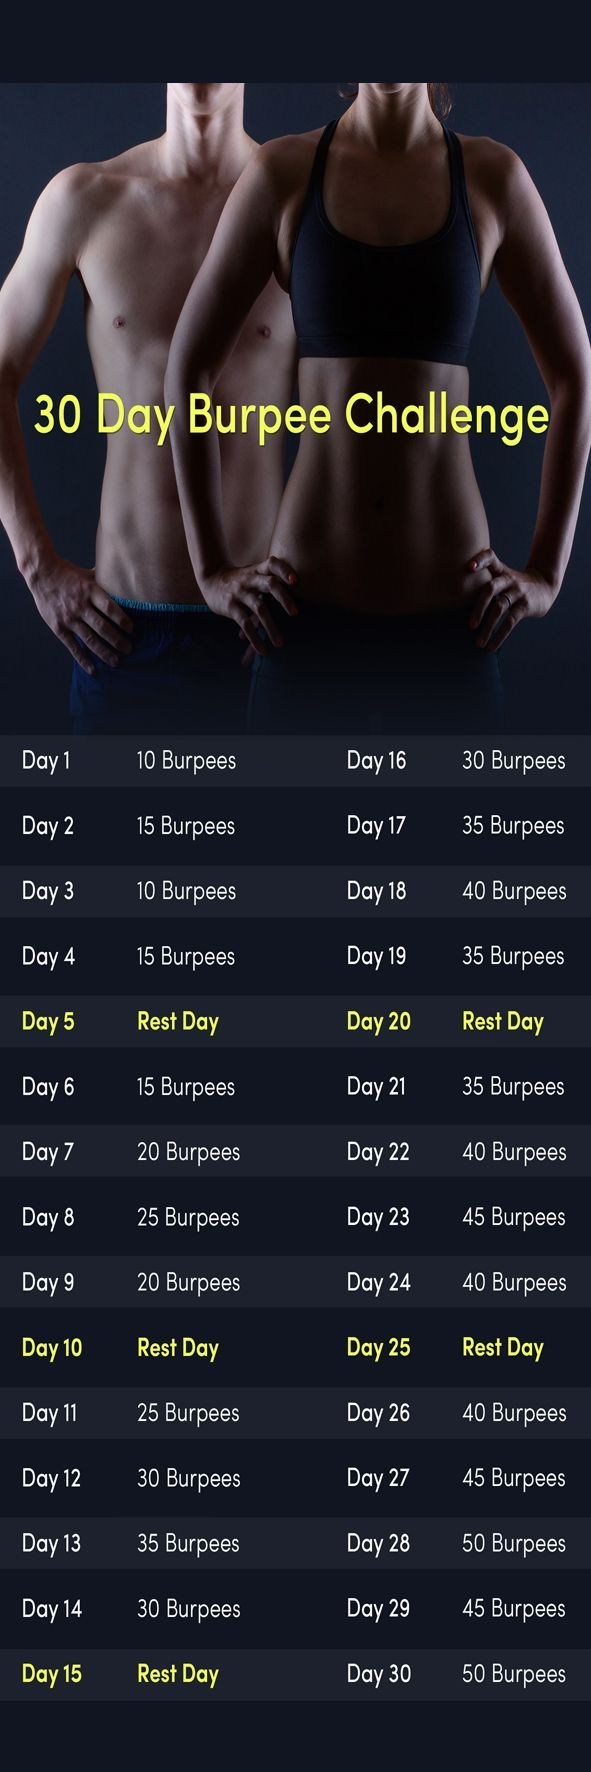 Join our 30 day burpee challenge to work your entire body and strengthen your core in under a month. Simply print out the plan and perform the number of burpees for each day. If you already feel confident with your burpees, ramp up your challenge by doubling the time each day!